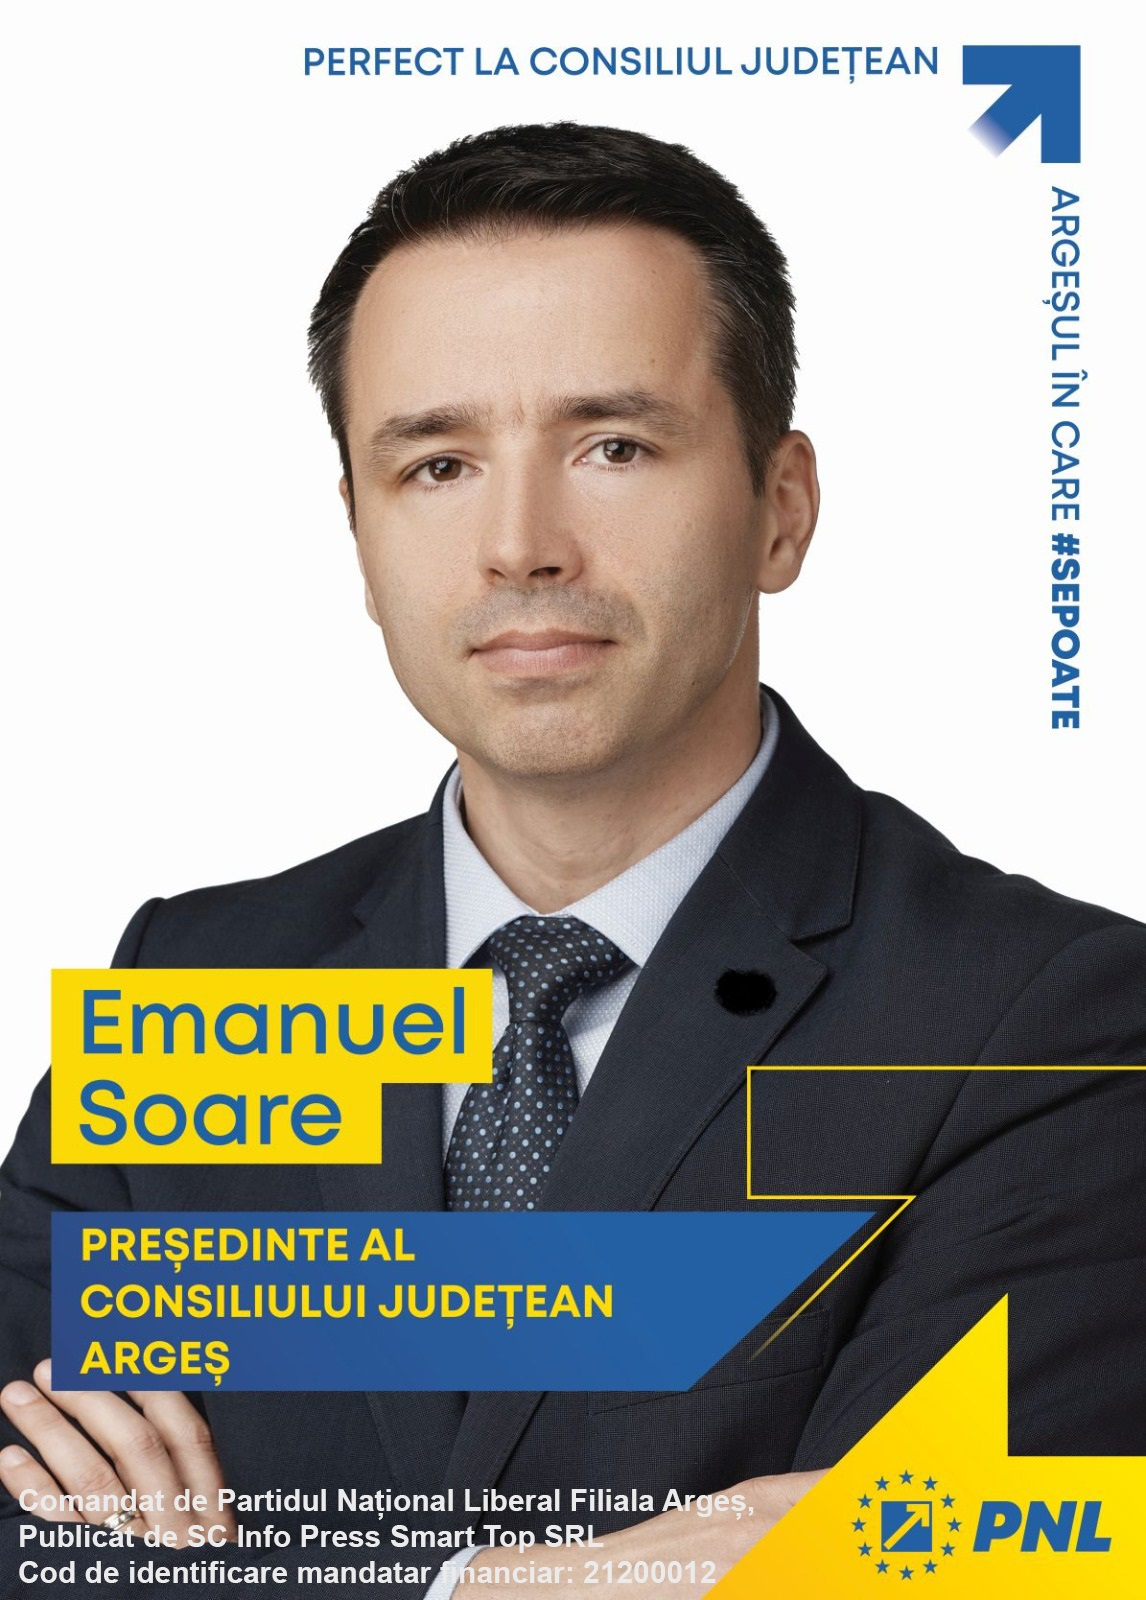 financiarpress_soare1.jpg